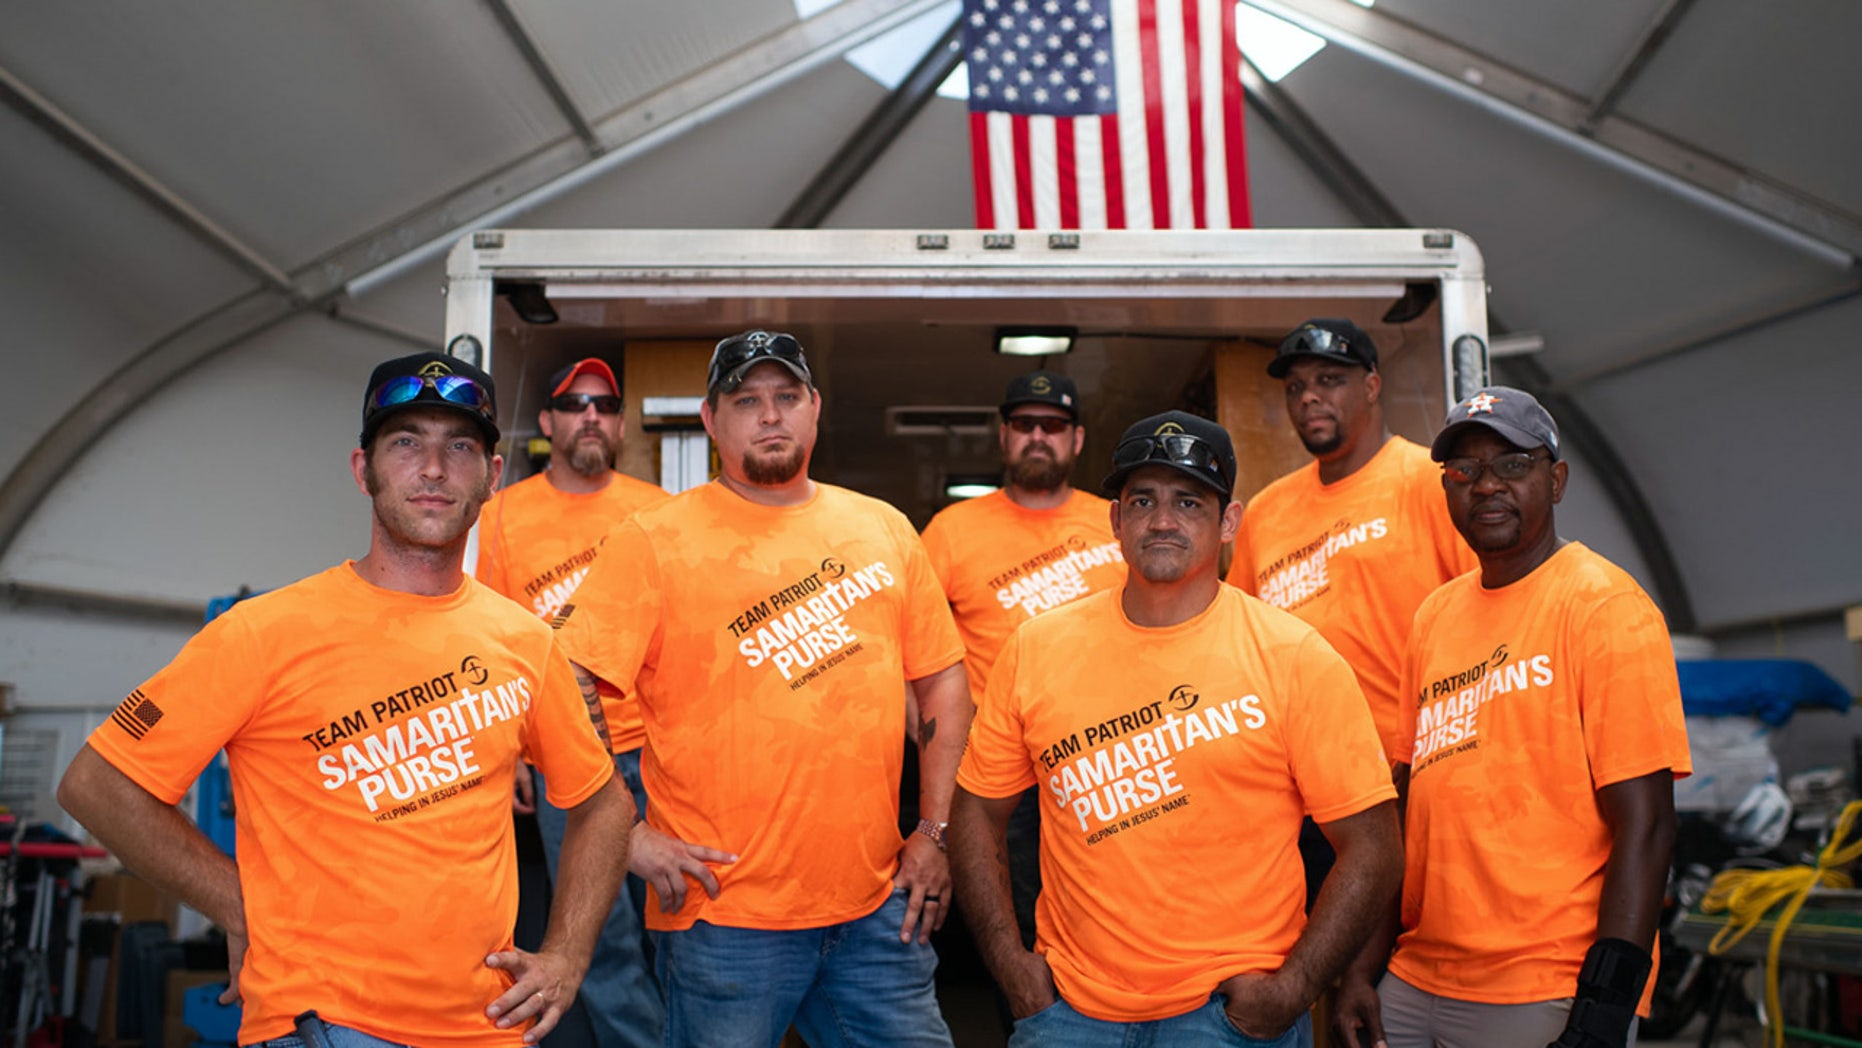 Team Patriot, a new initiative from Samaritan's Purse, offers wounded veterans a way to give back through U.S. Disaster Relief.